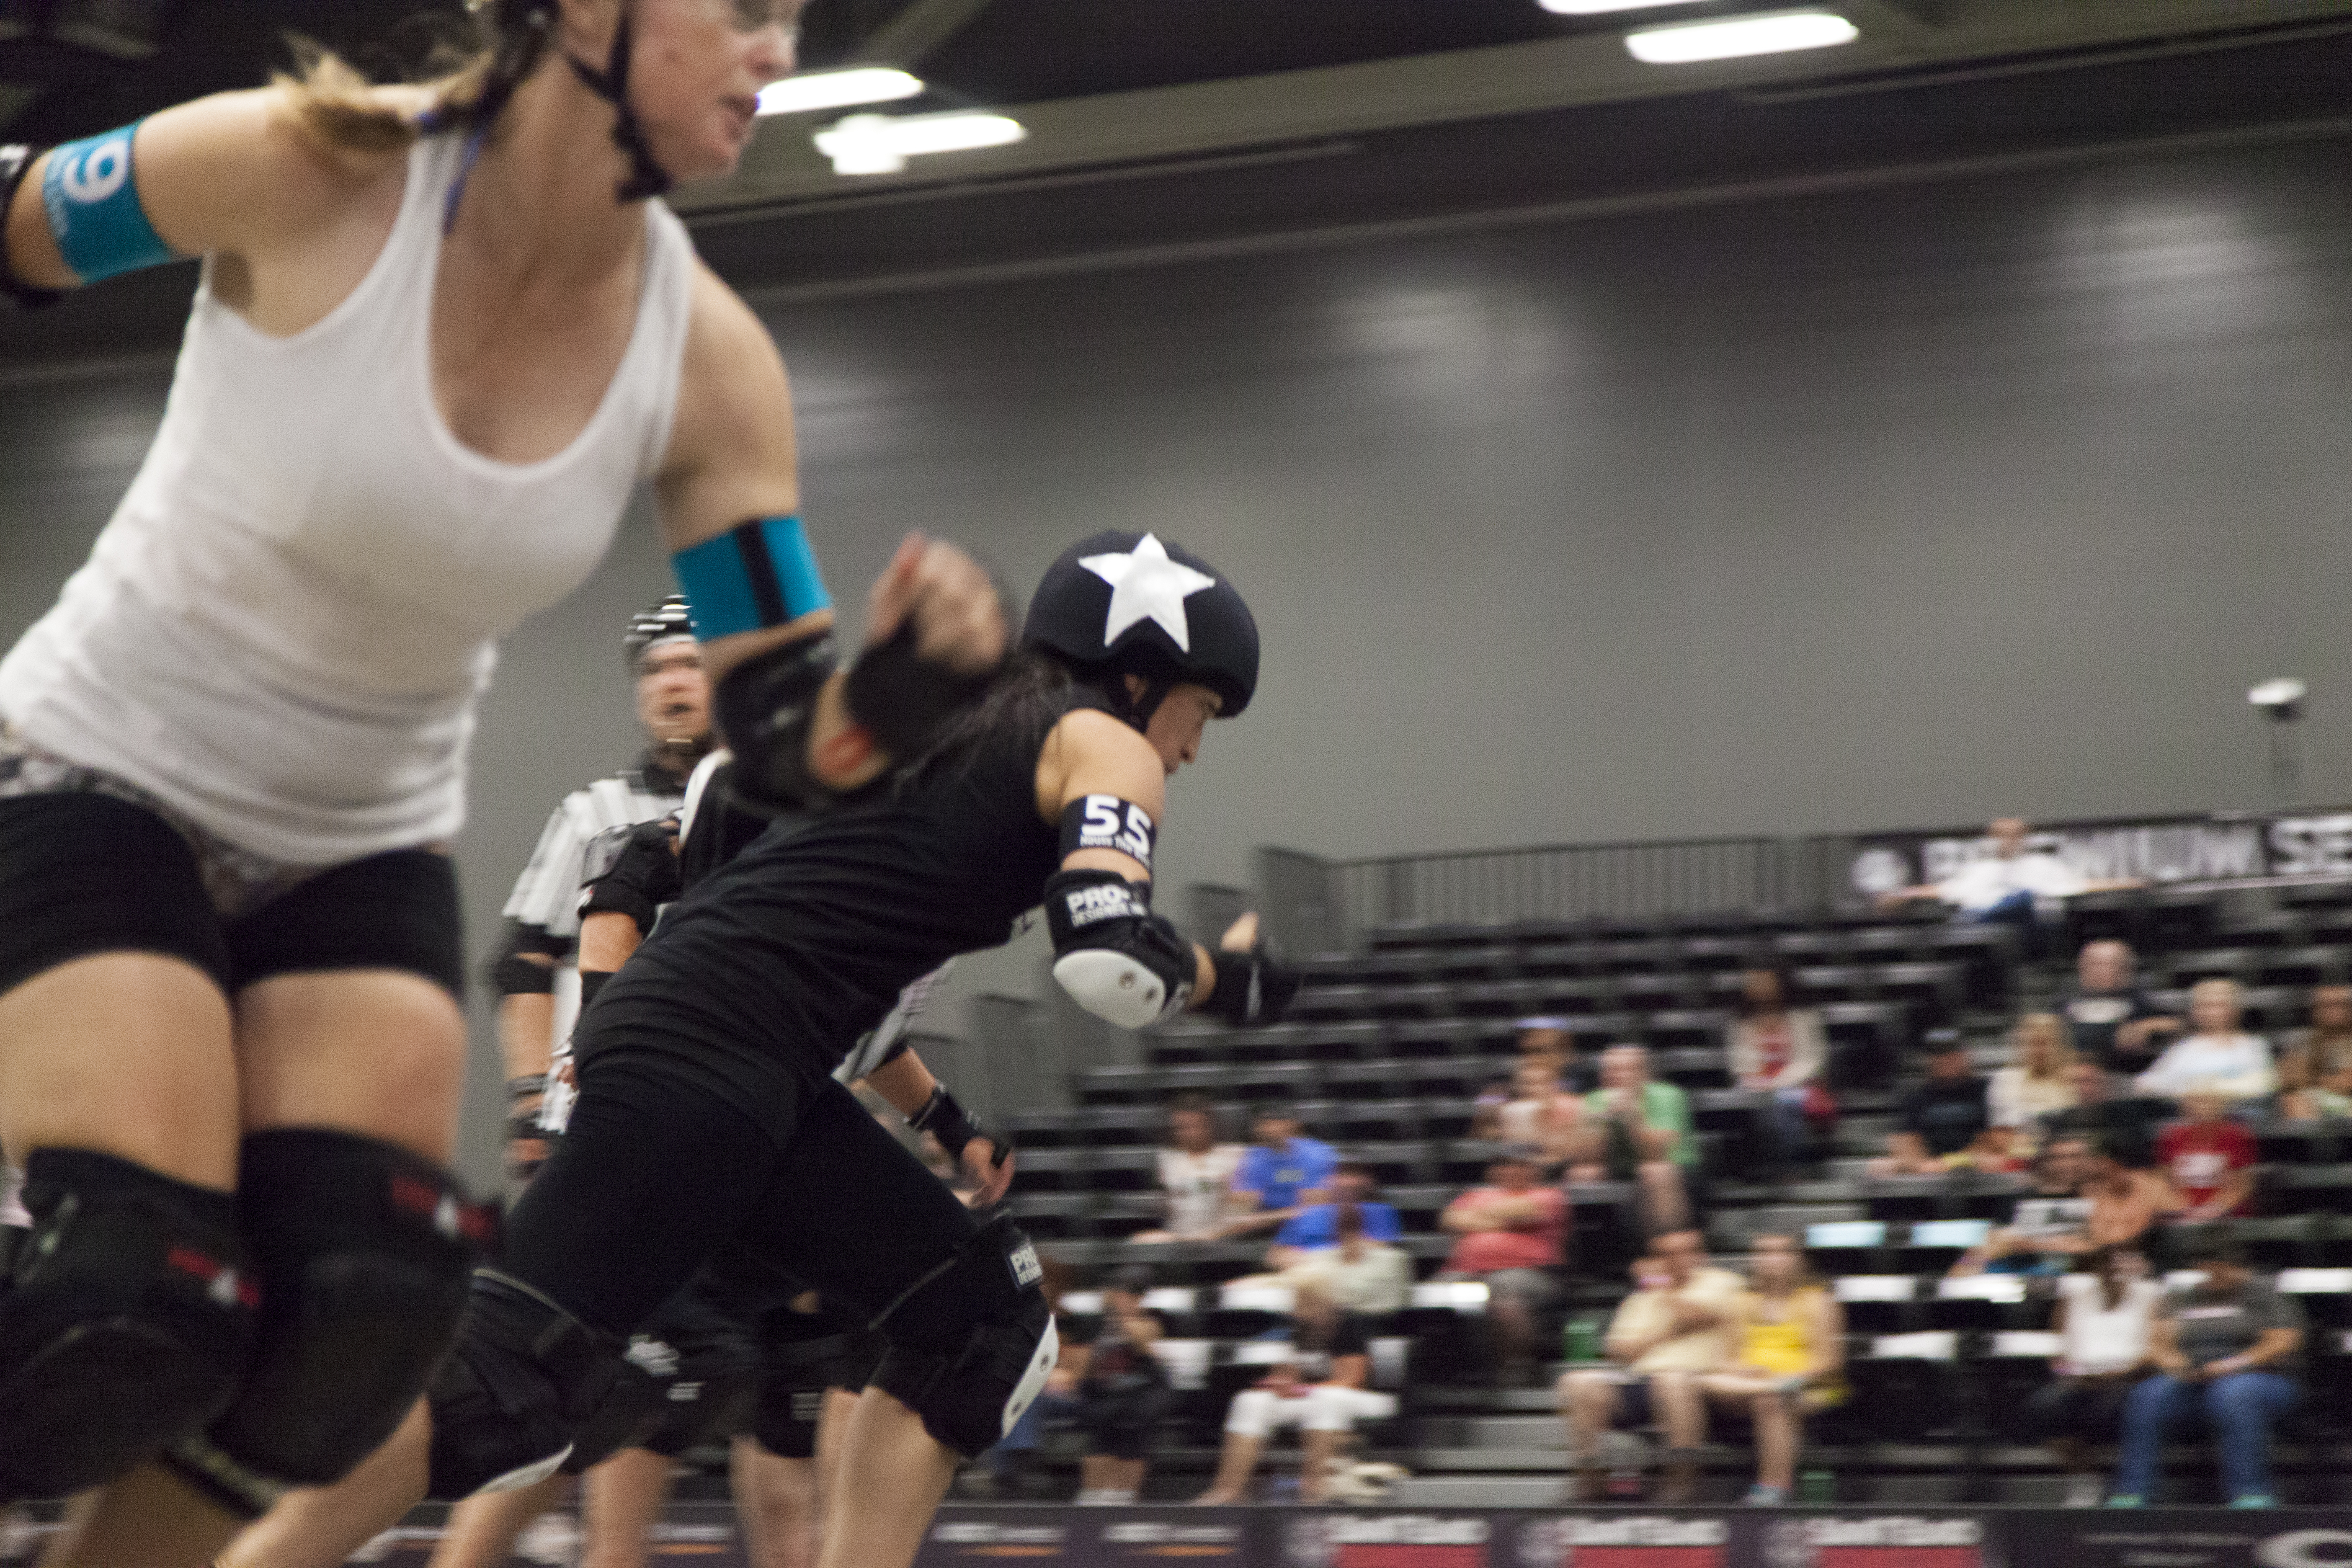 The jammer for Bar Belles gets out front in order to score points first against the Clean N Jerks.